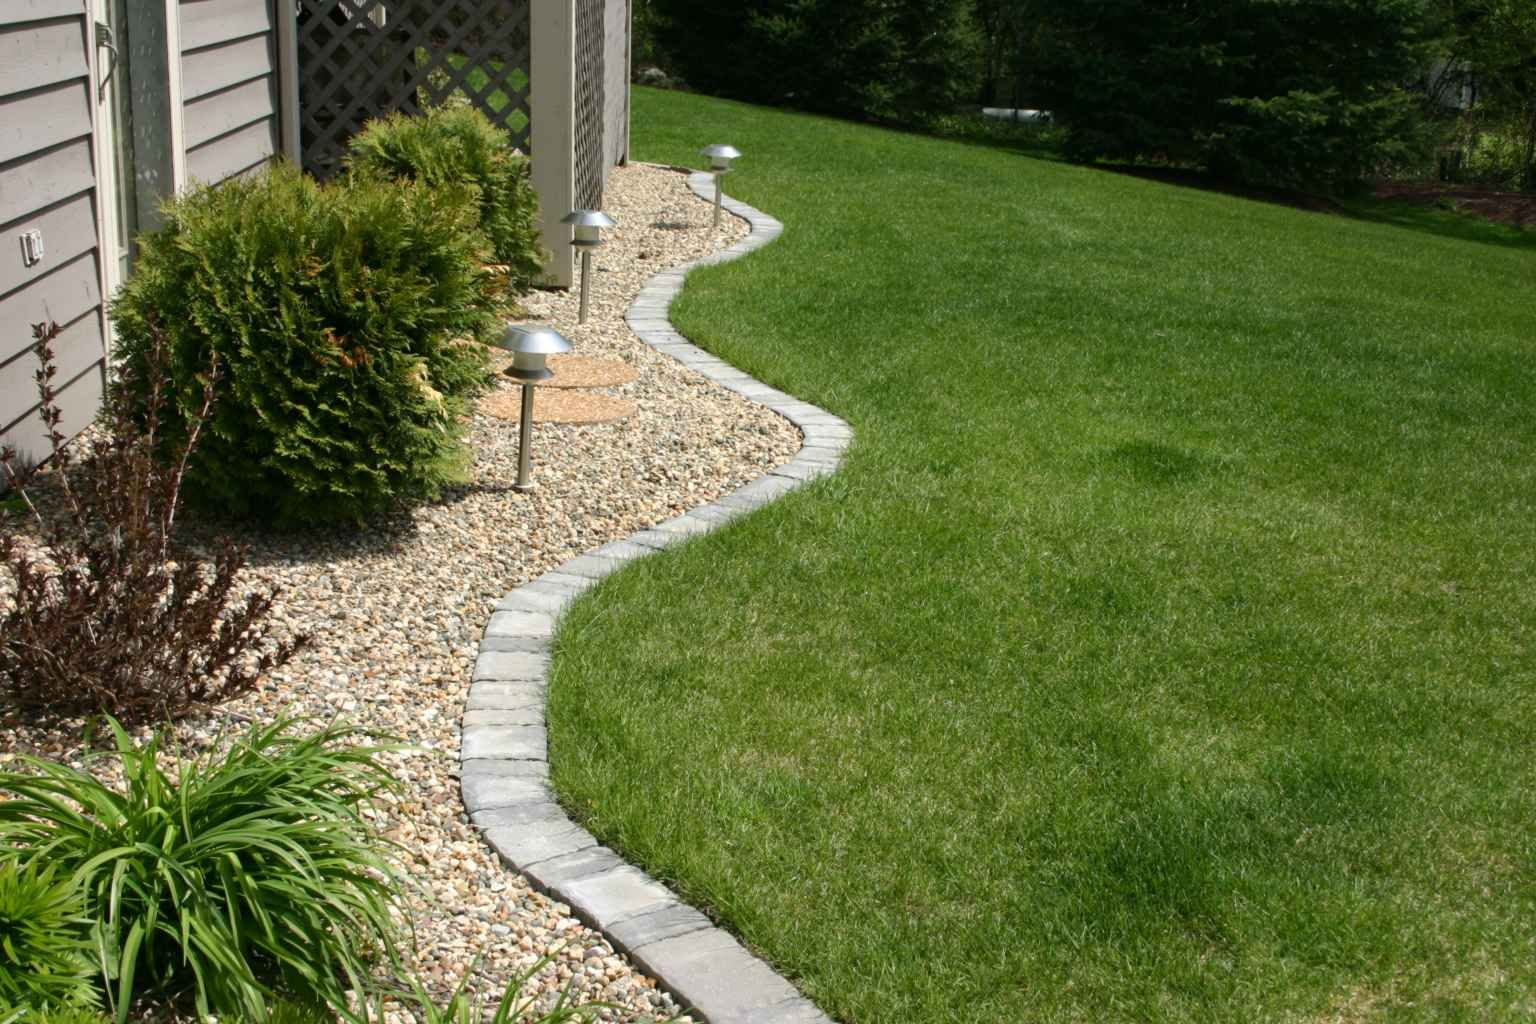 17 Best 1000 images about Lawn Edge on Pinterest Gardens Garden